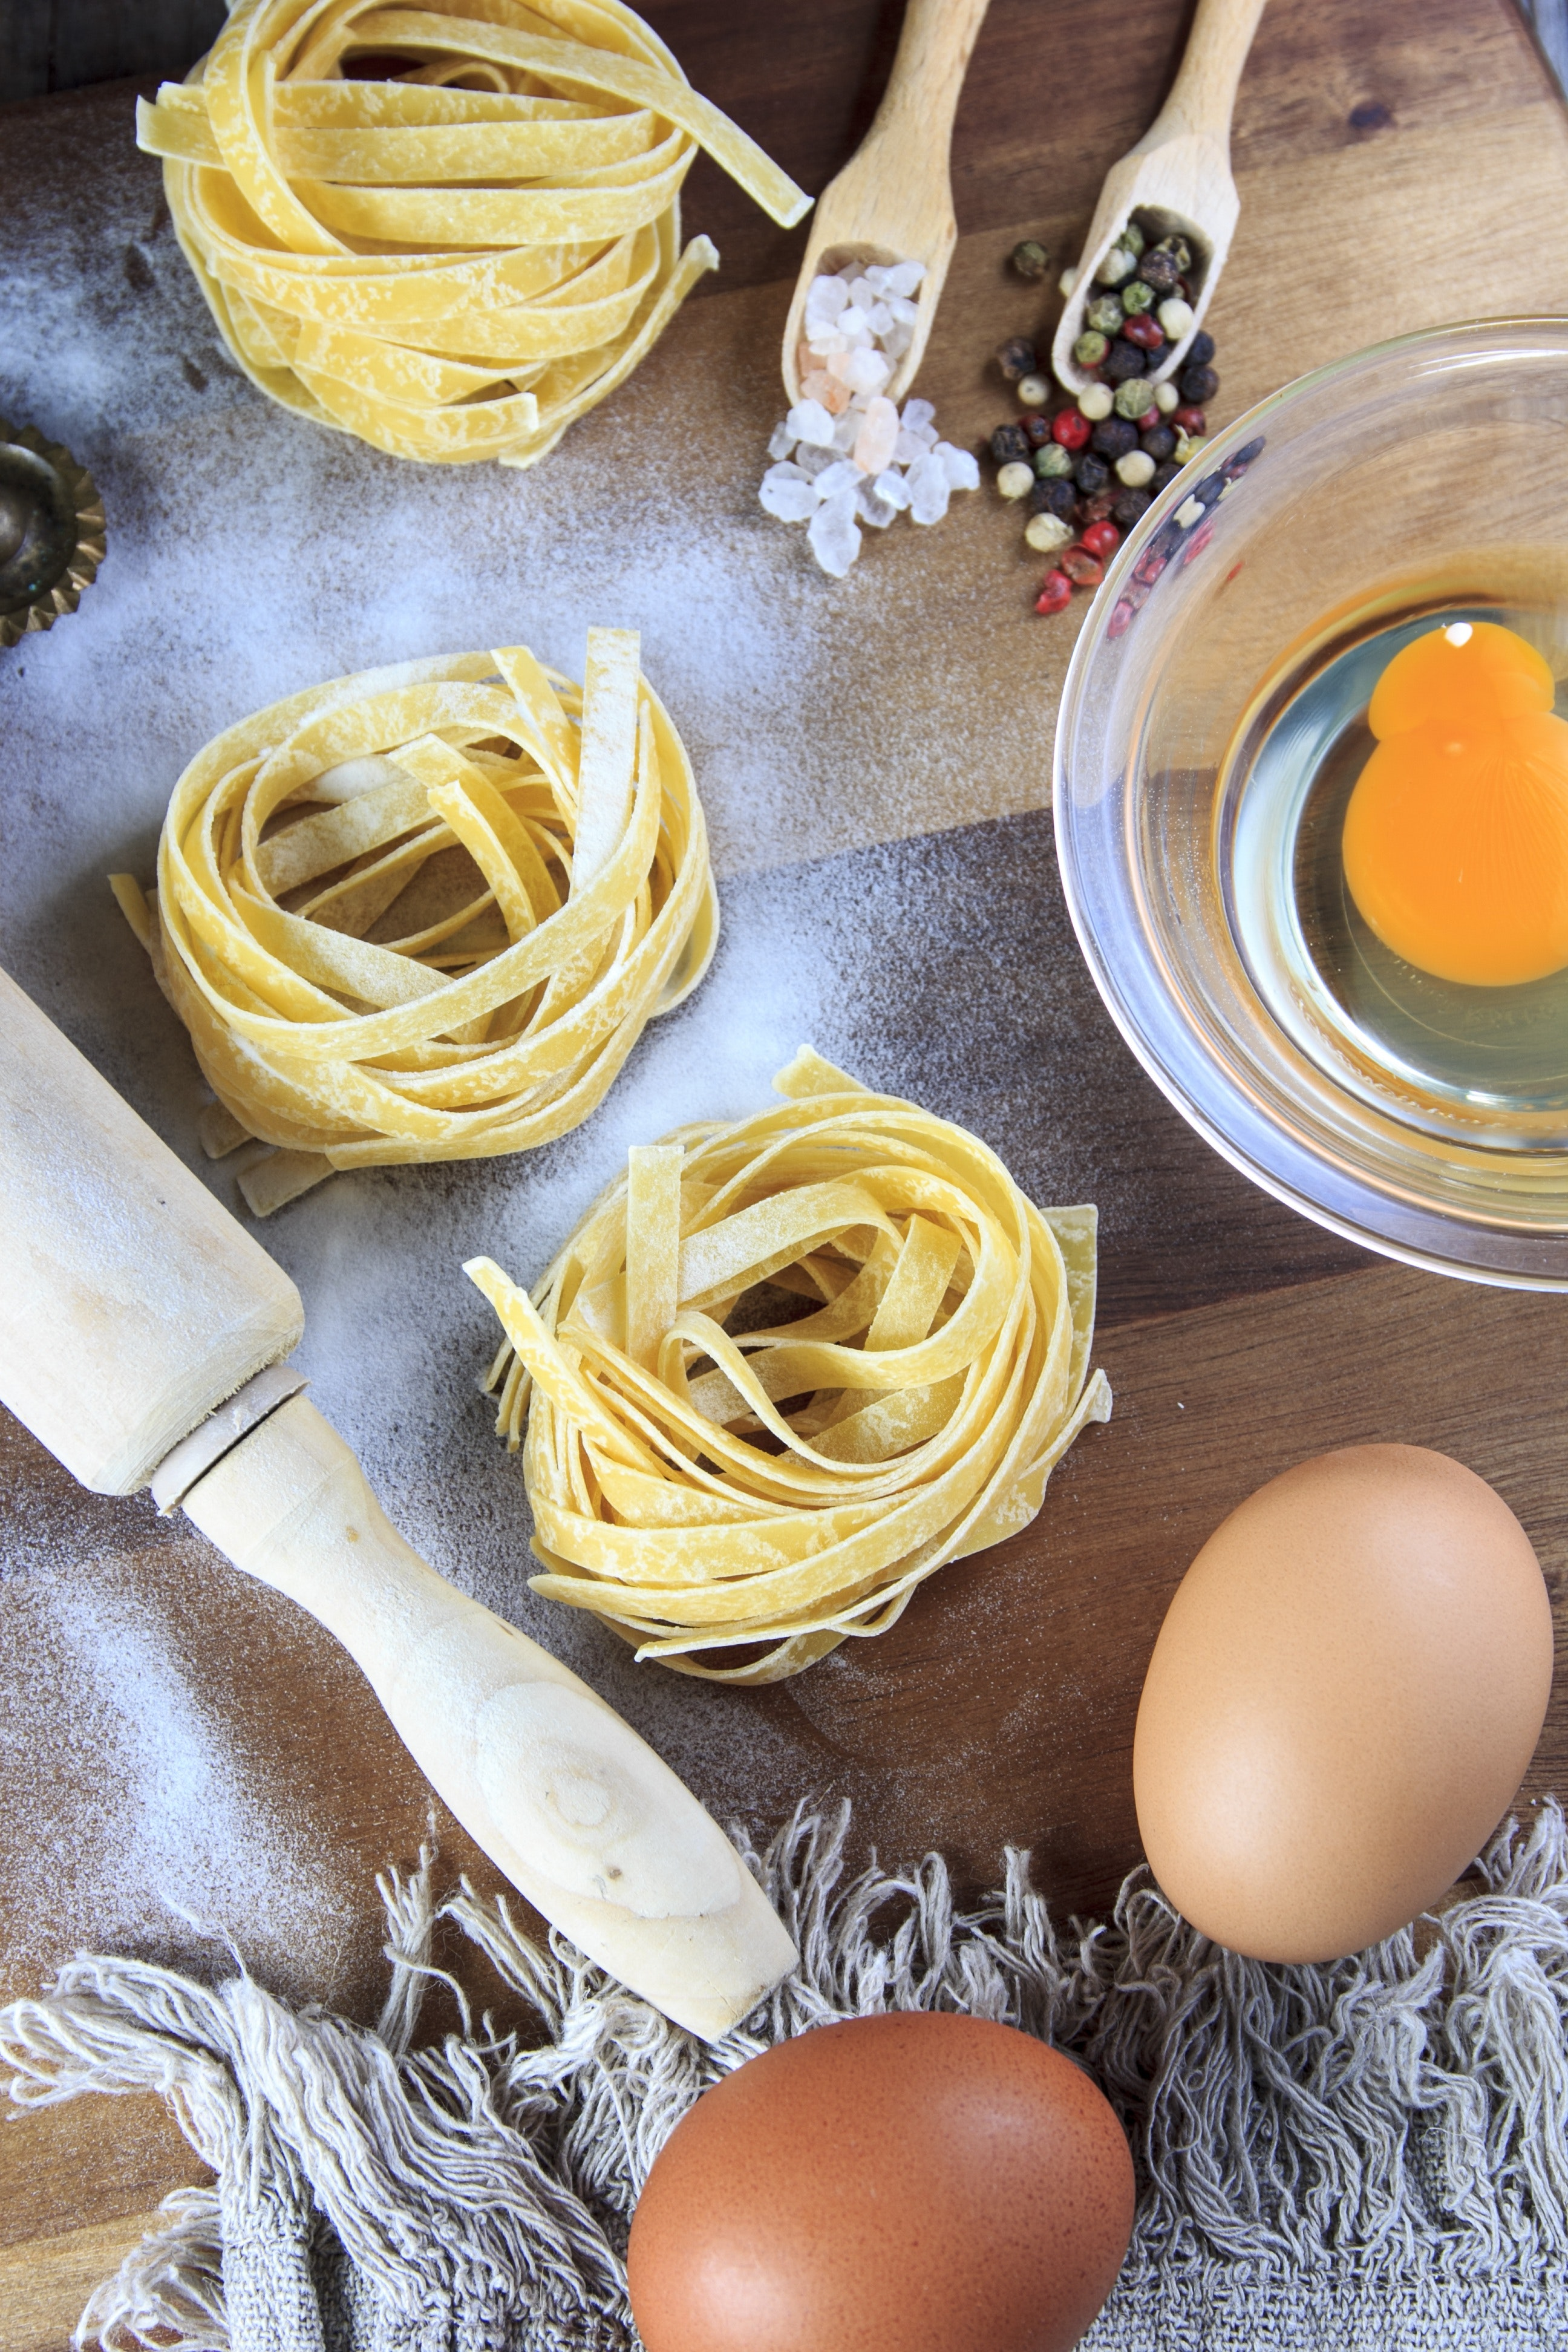 High Angle View of People on Table, Spaghetti, Spice, Salt, Raw, HQ Photo